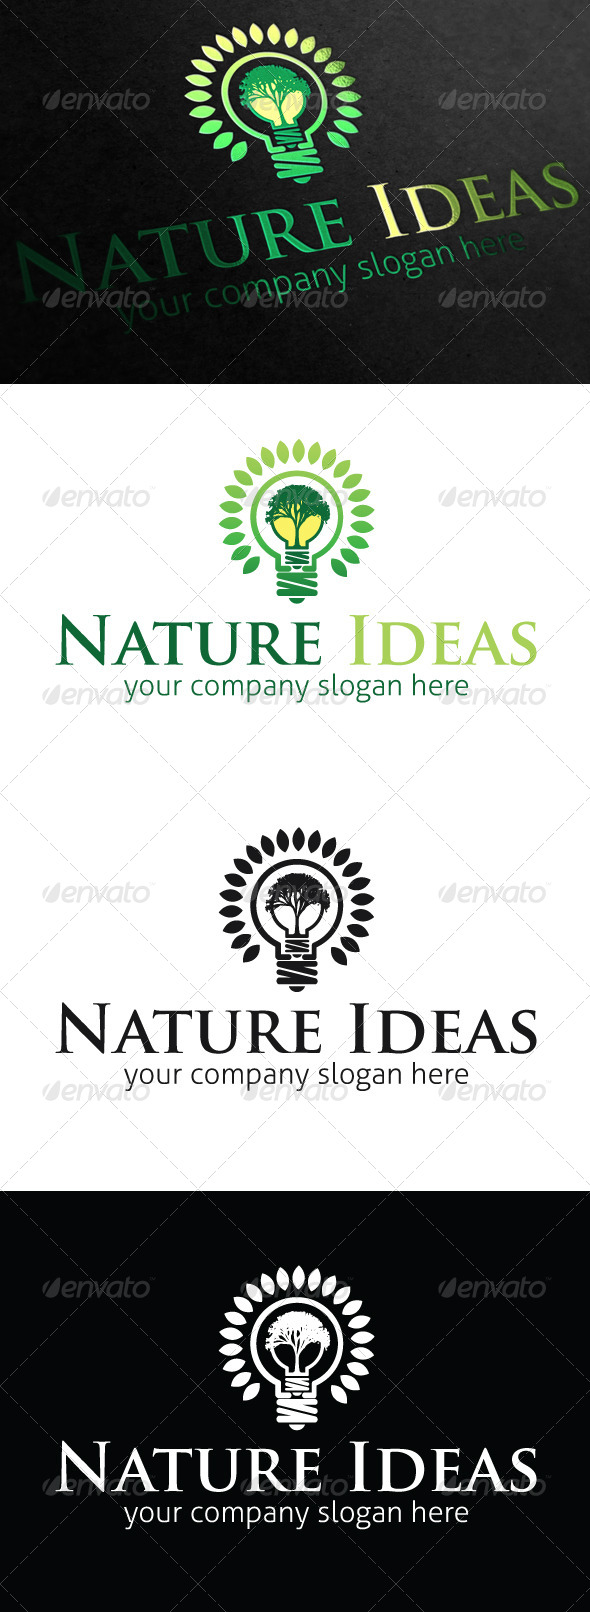 GraphicRiver Nature Ideas 5174831